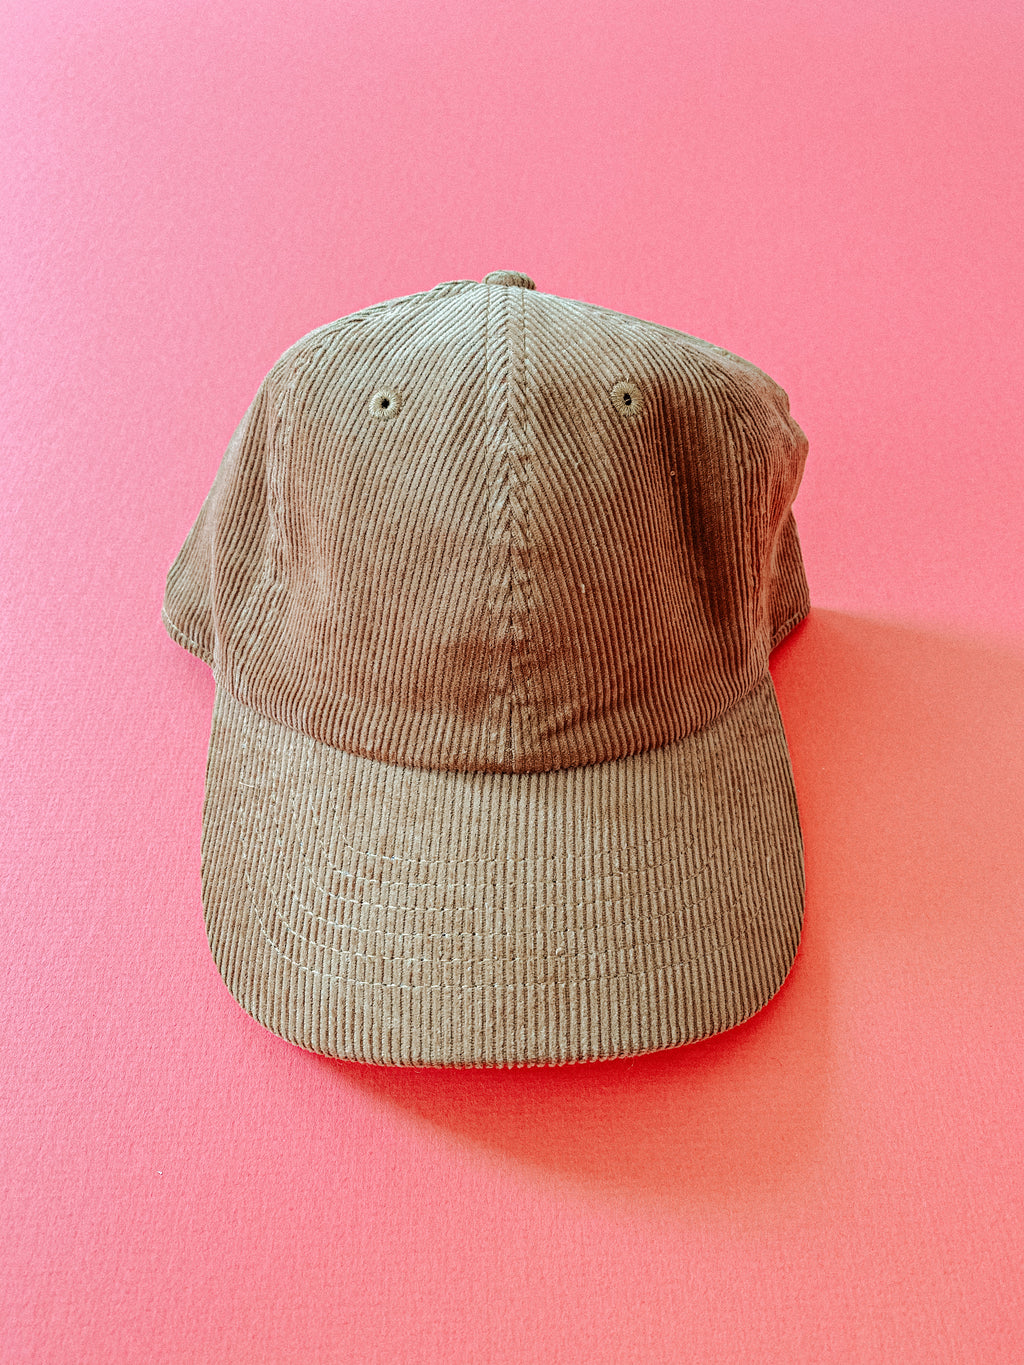 The Cora Hat: Camel